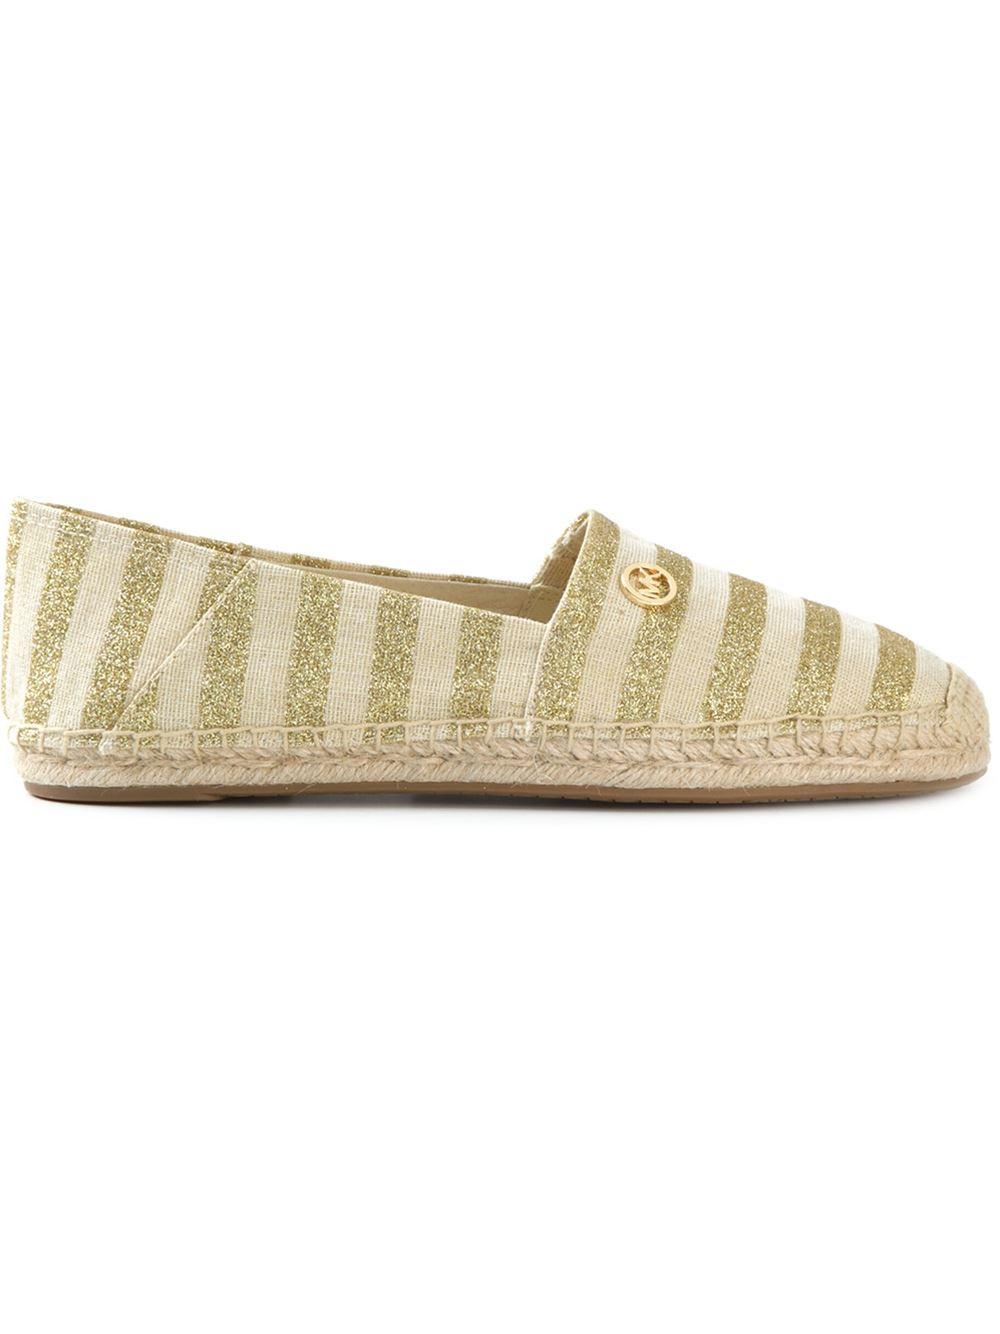 michael michael kors striped espadrilles in metallic lyst. Black Bedroom Furniture Sets. Home Design Ideas